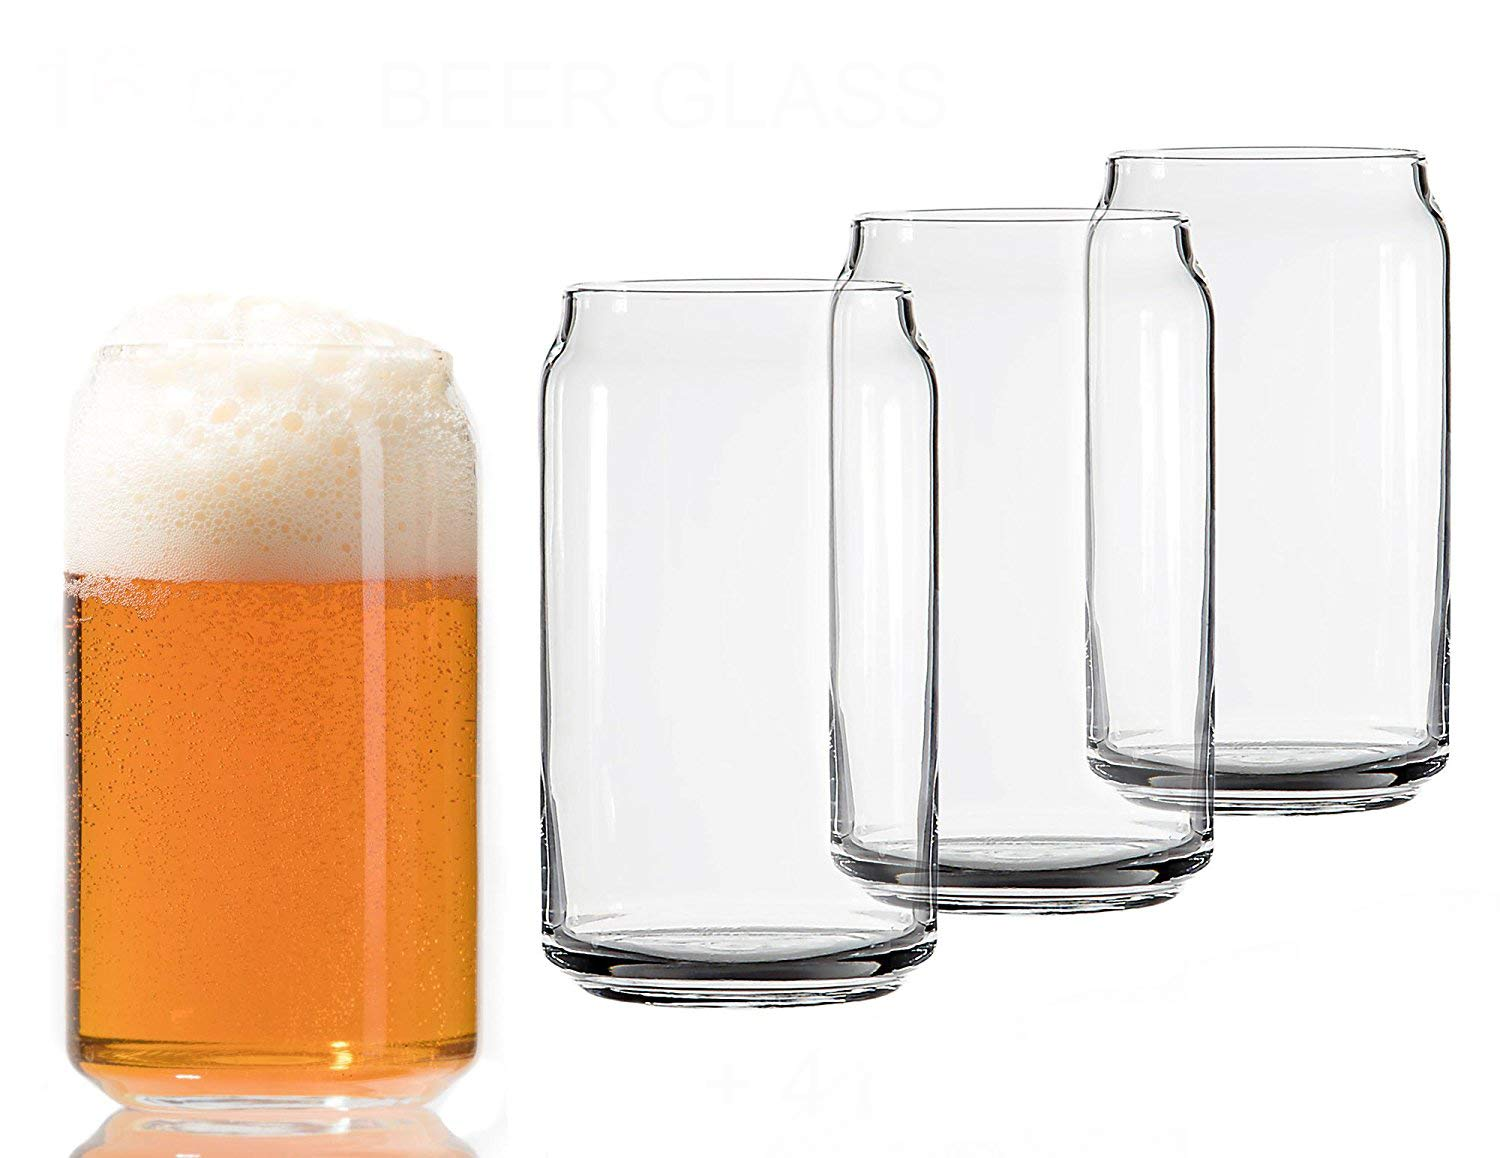 Libbey Can Shaped Beer Glass - 16 oz - 4 PACK w/Pourer